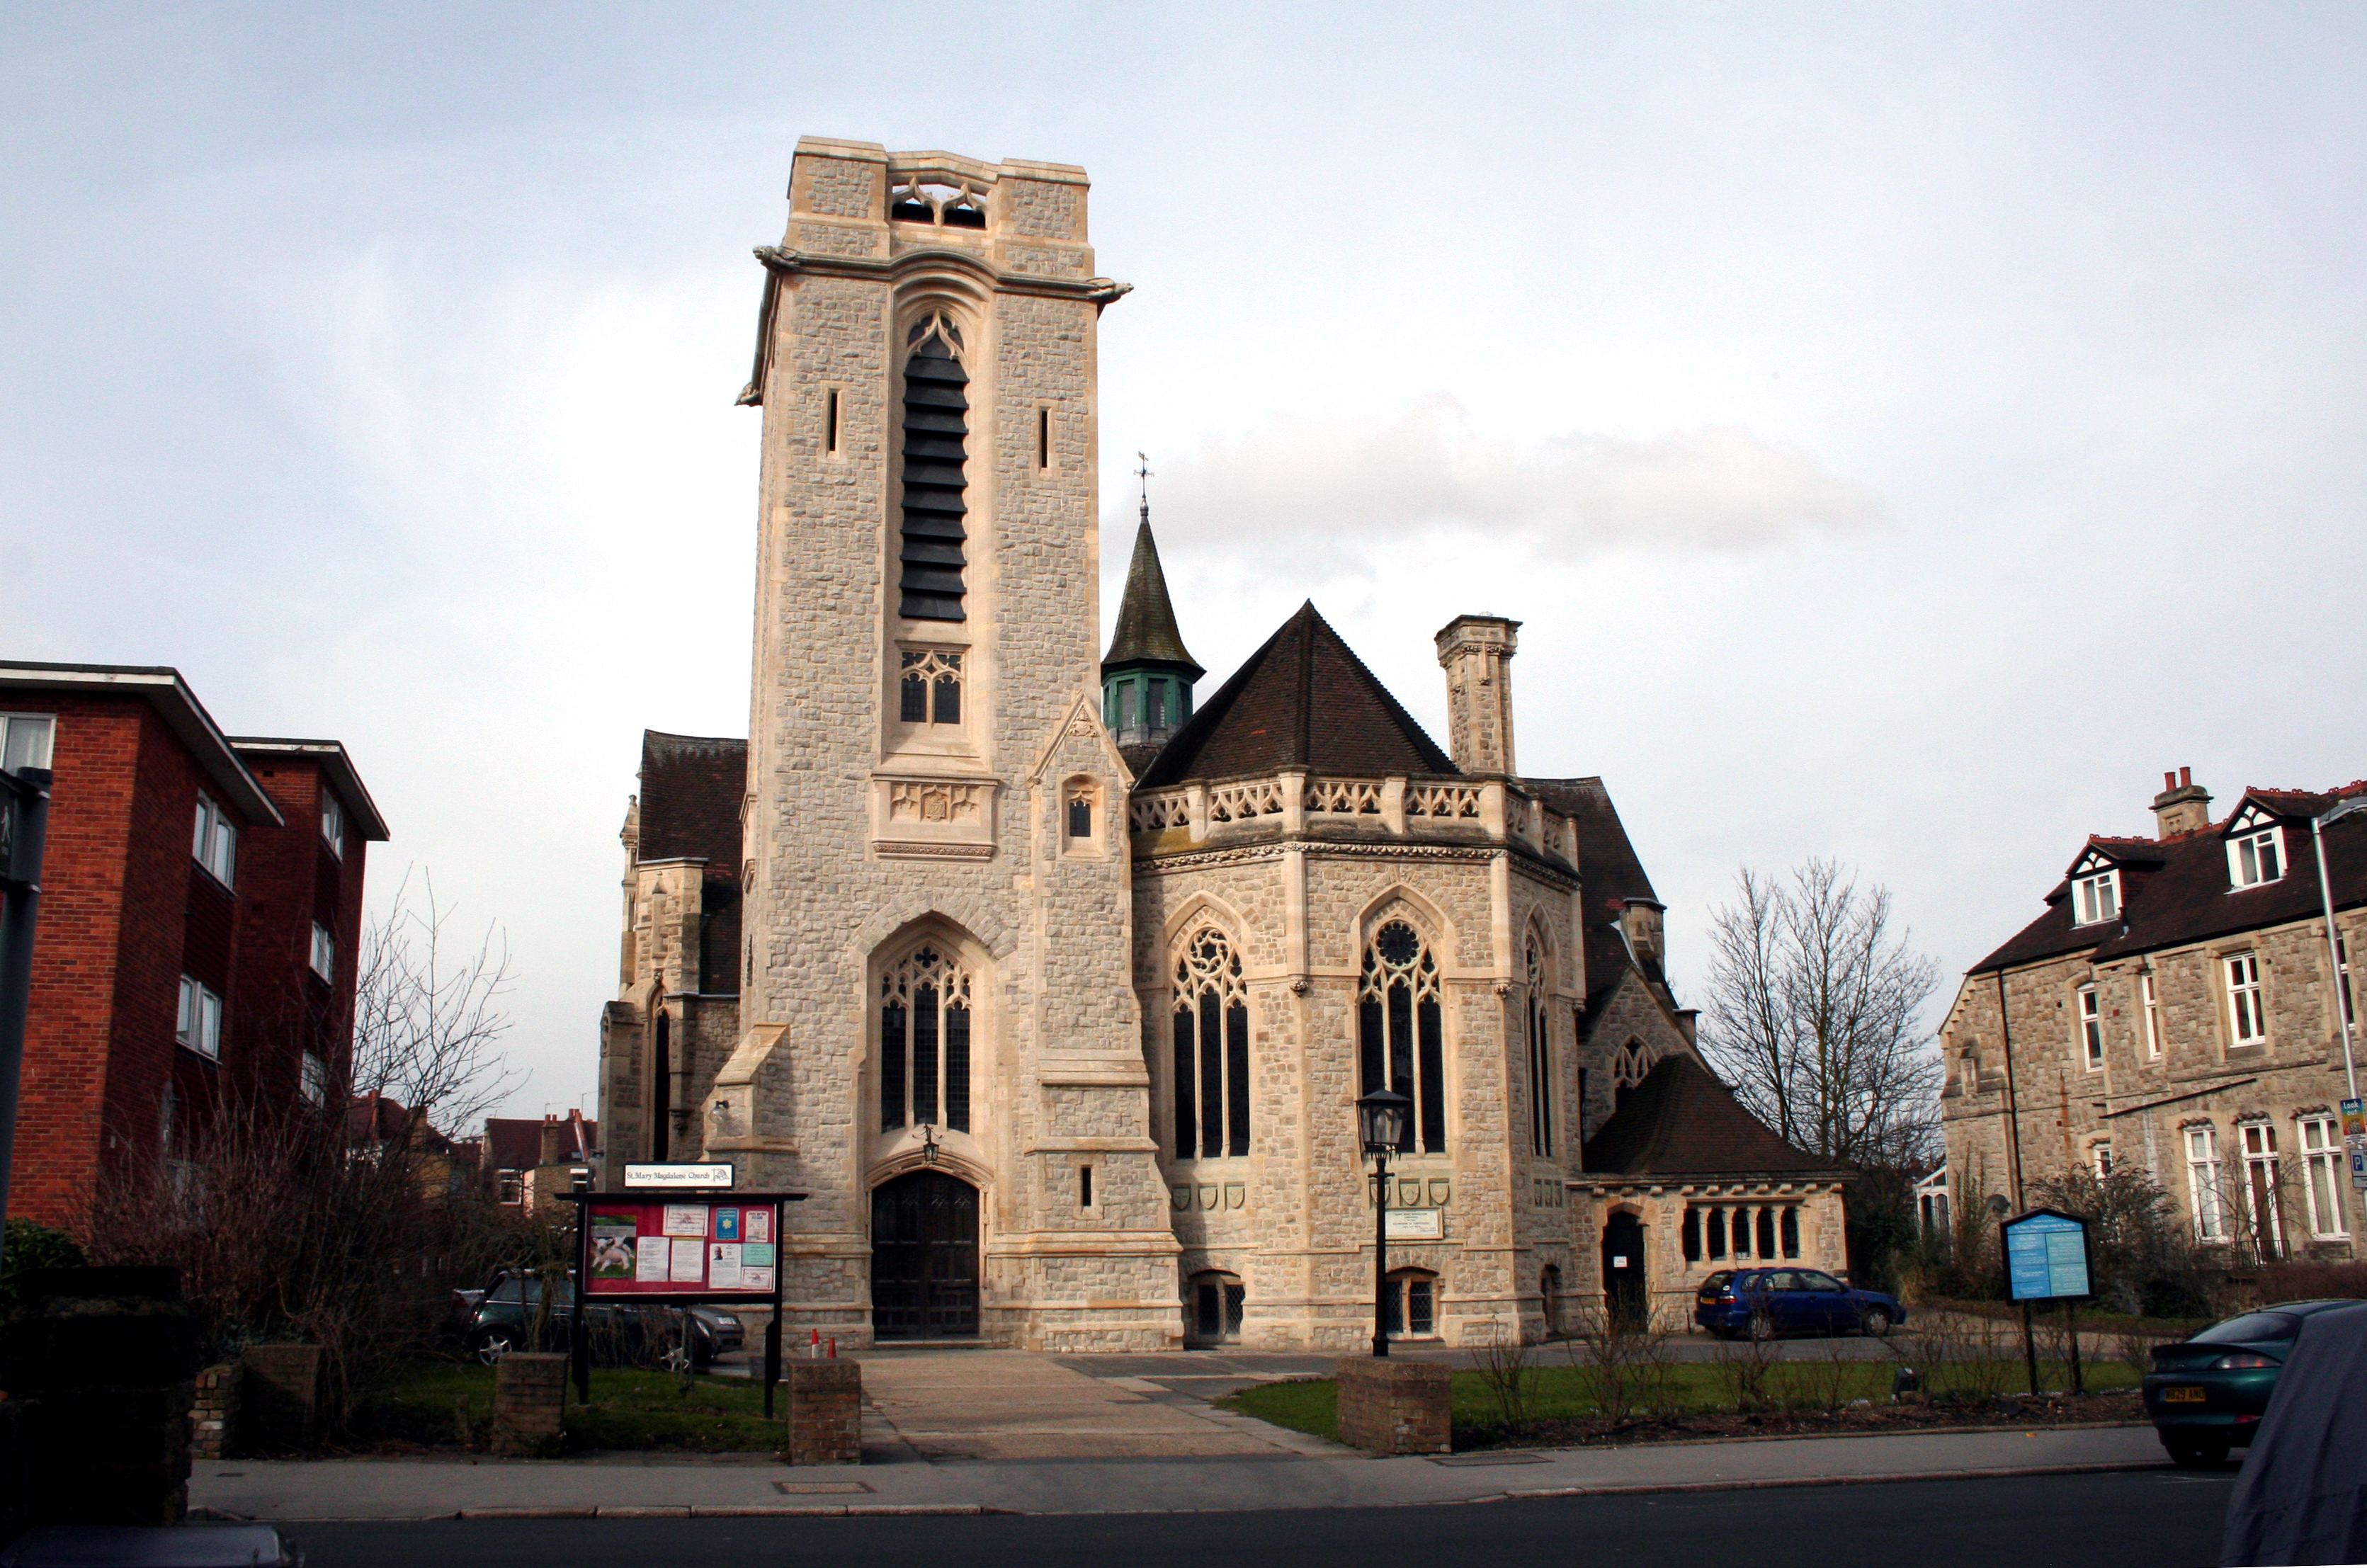 Croydon%2C_Church_of_St._Mary_Magdalene_with_St._Martin%2C_Canning_Road_-_geograph.org.uk_-_1734213.jpg?width=300